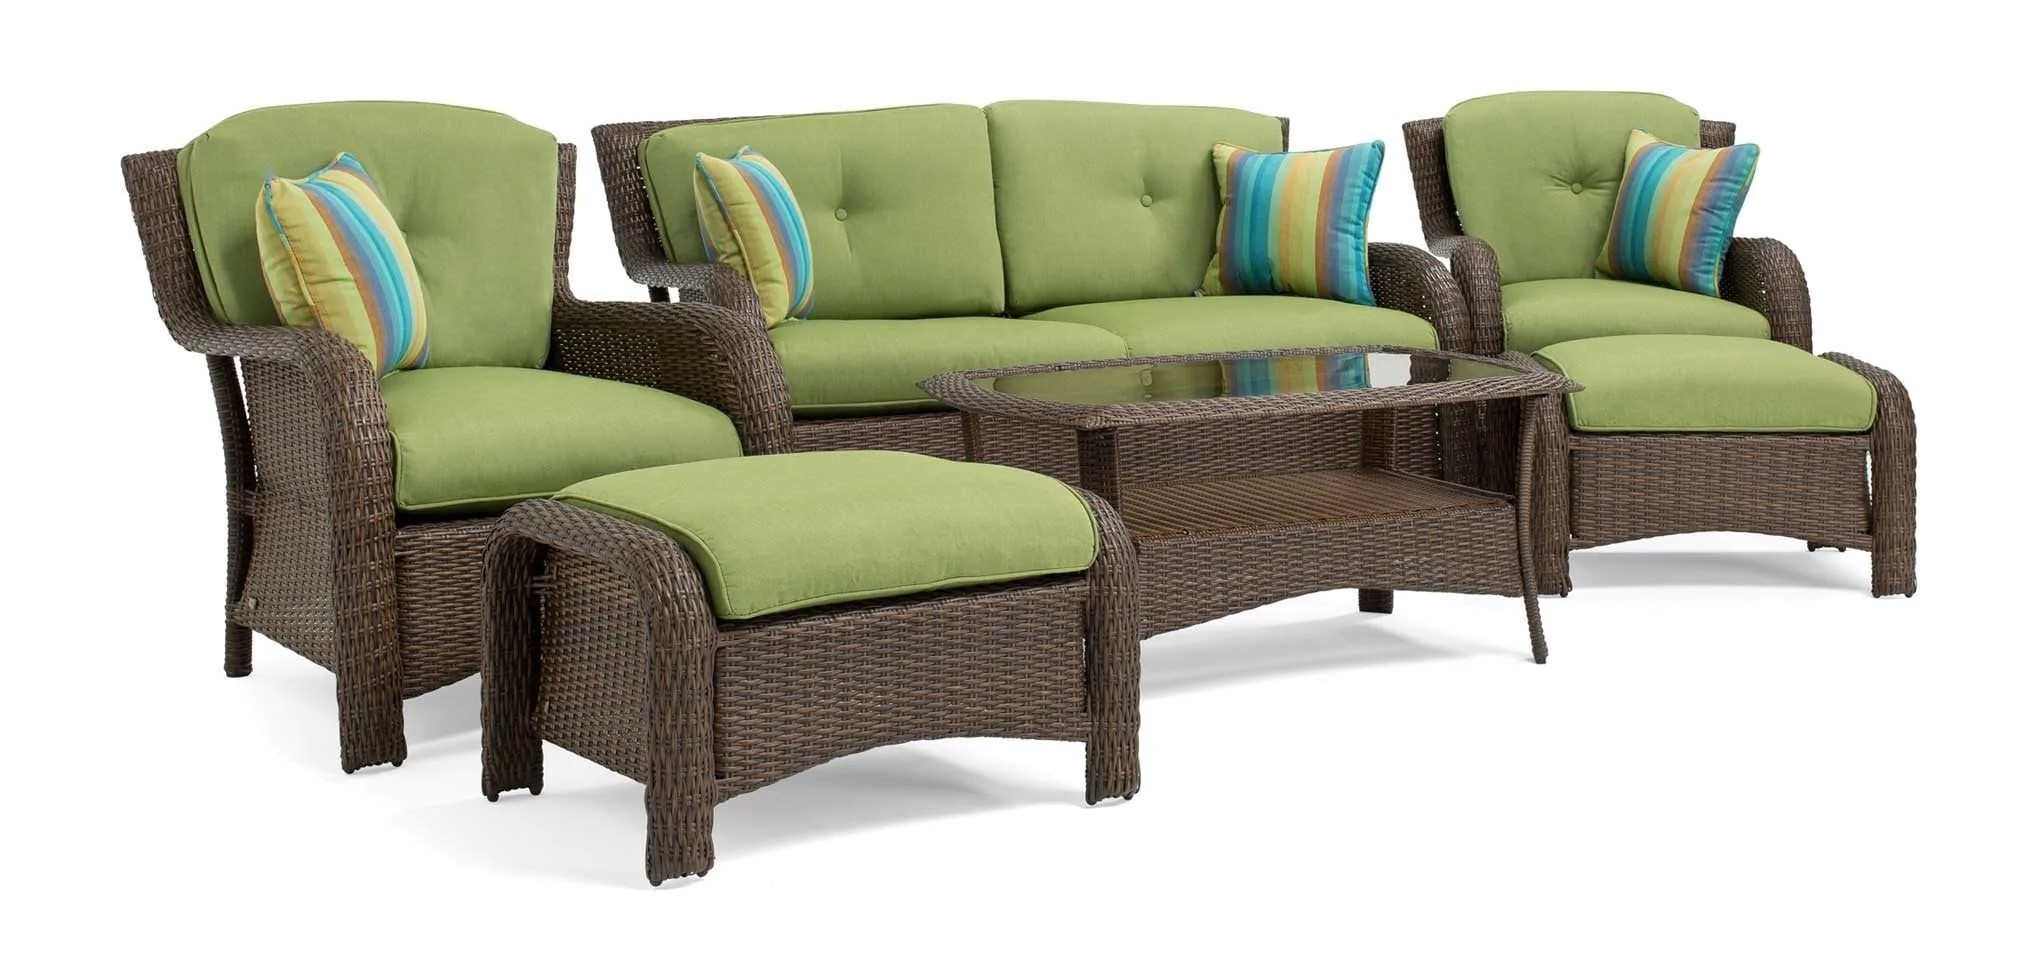 Wicker Patio Chair Sawyer 6pc Resin Wicker Patio Furniture Conversation Set La Z